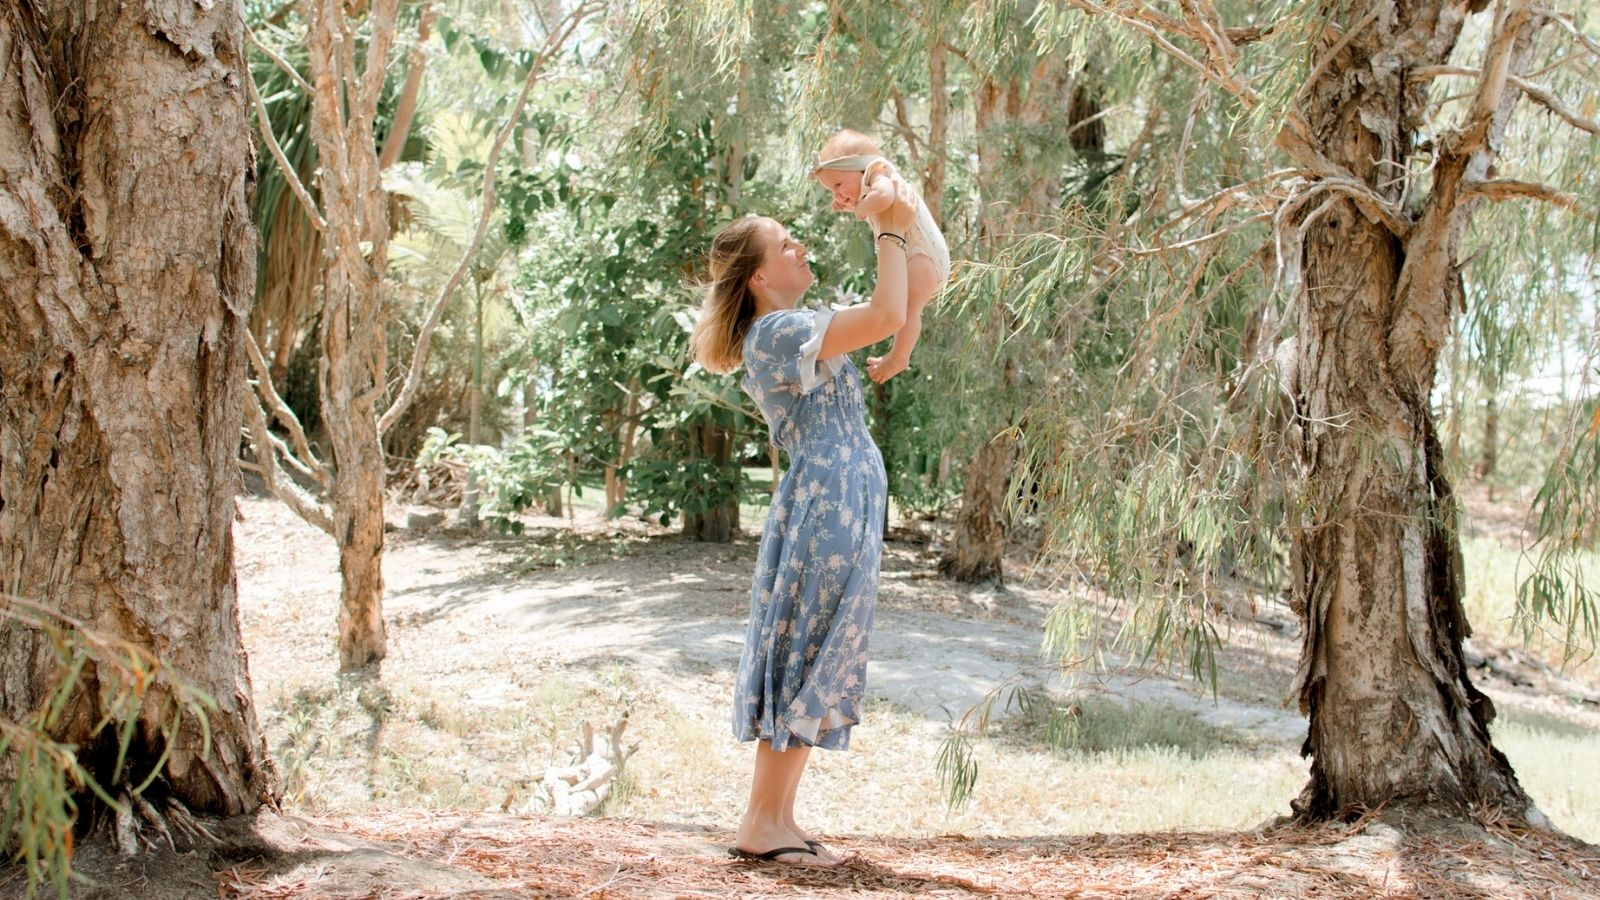 Traveling with your baby during COVID